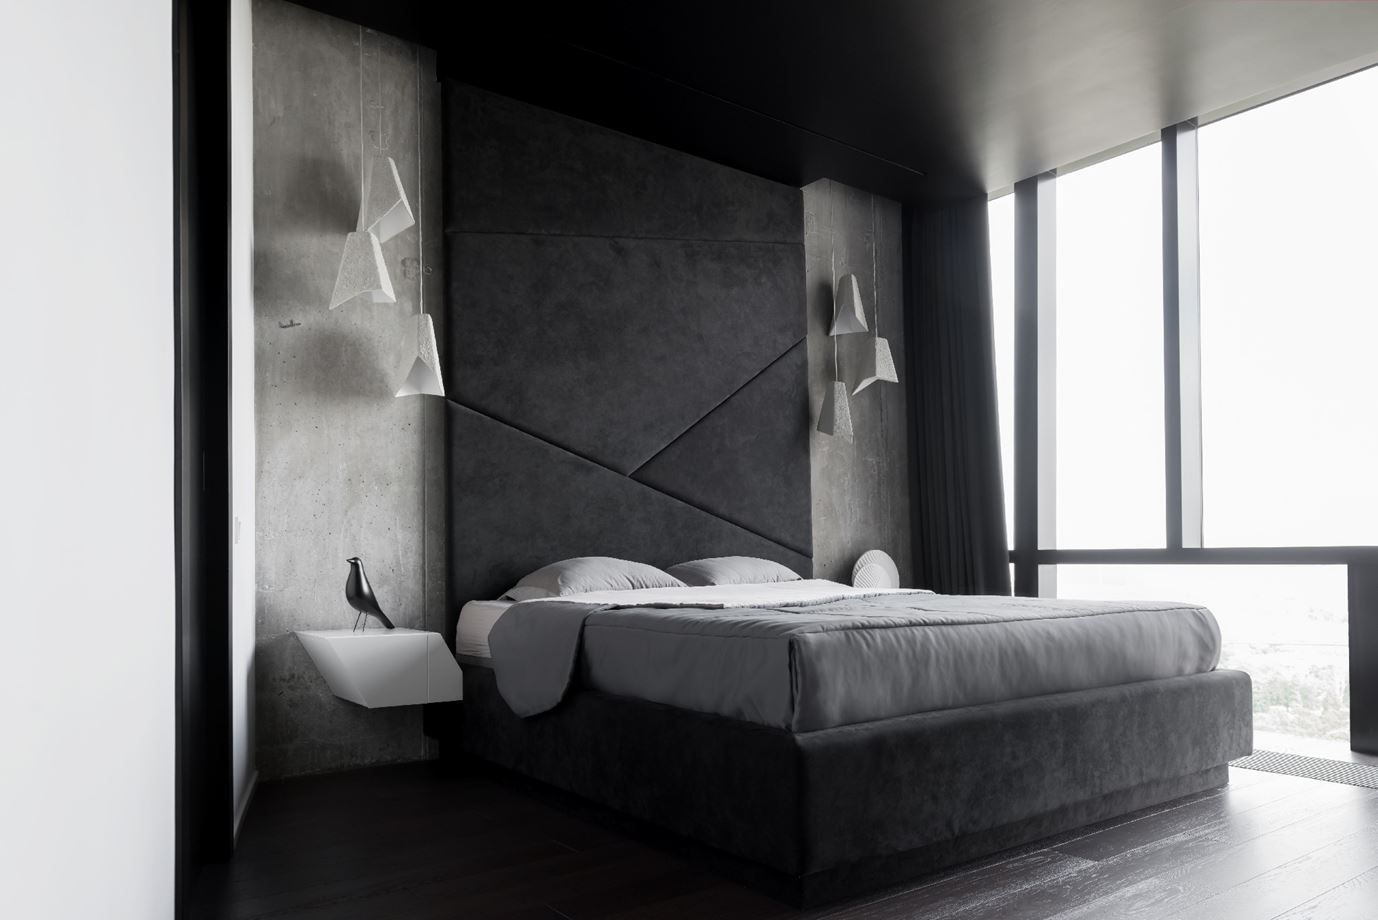 These super tall headboards add a lot of drama.